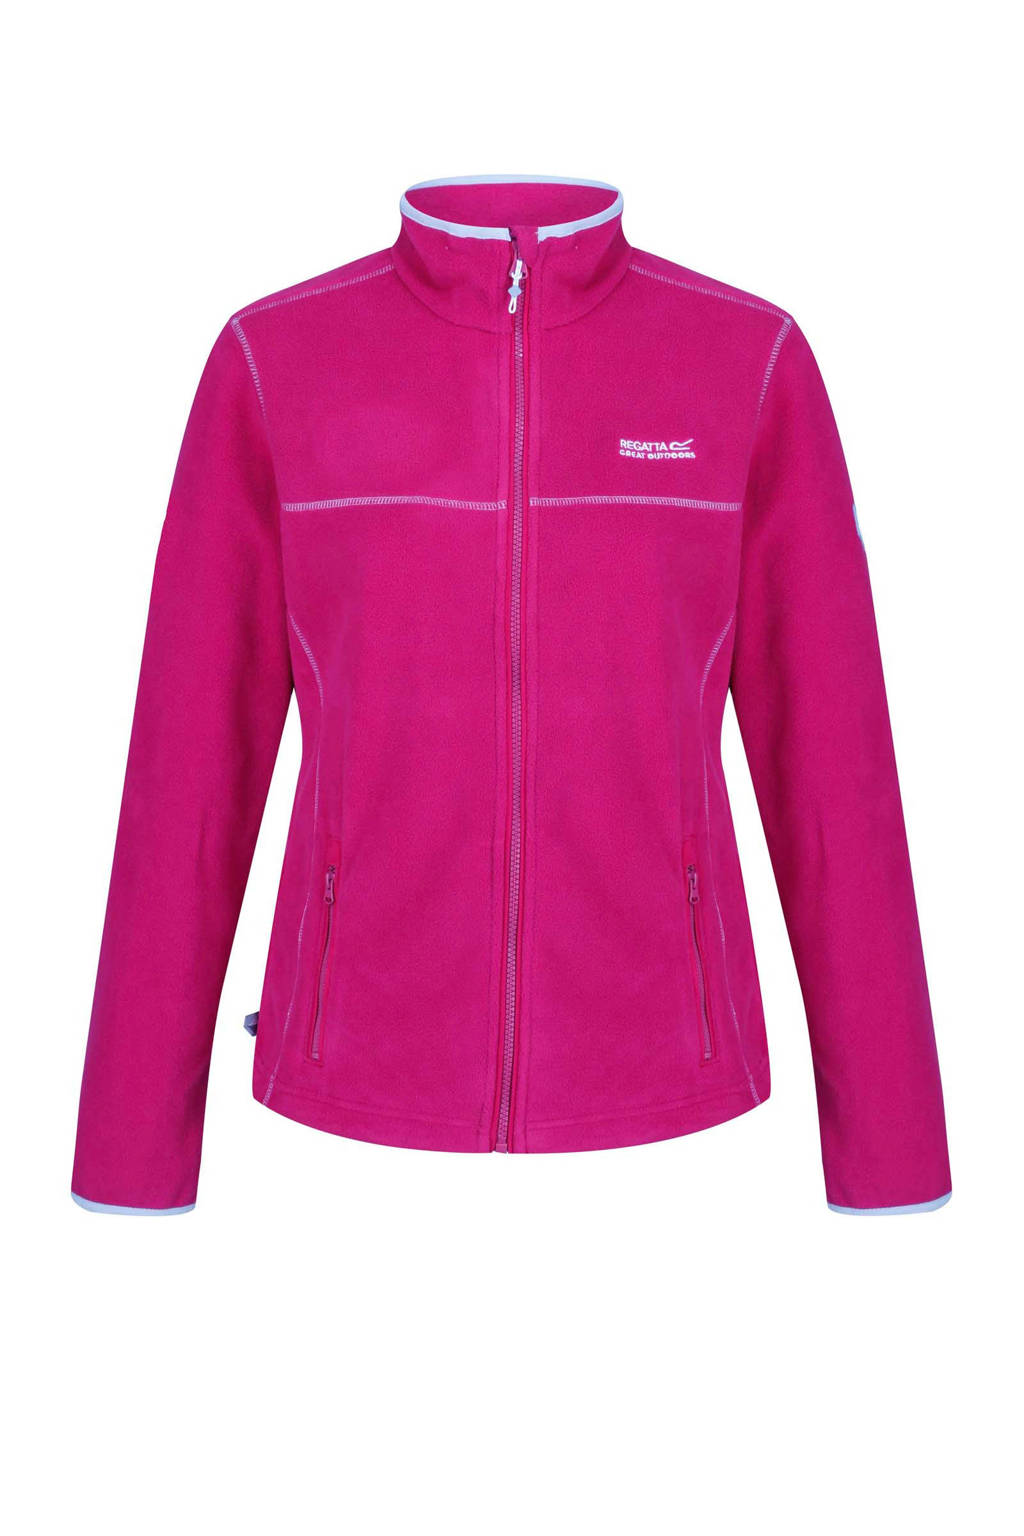 Regatta Floreo fleece jack roze, Dark Cerise